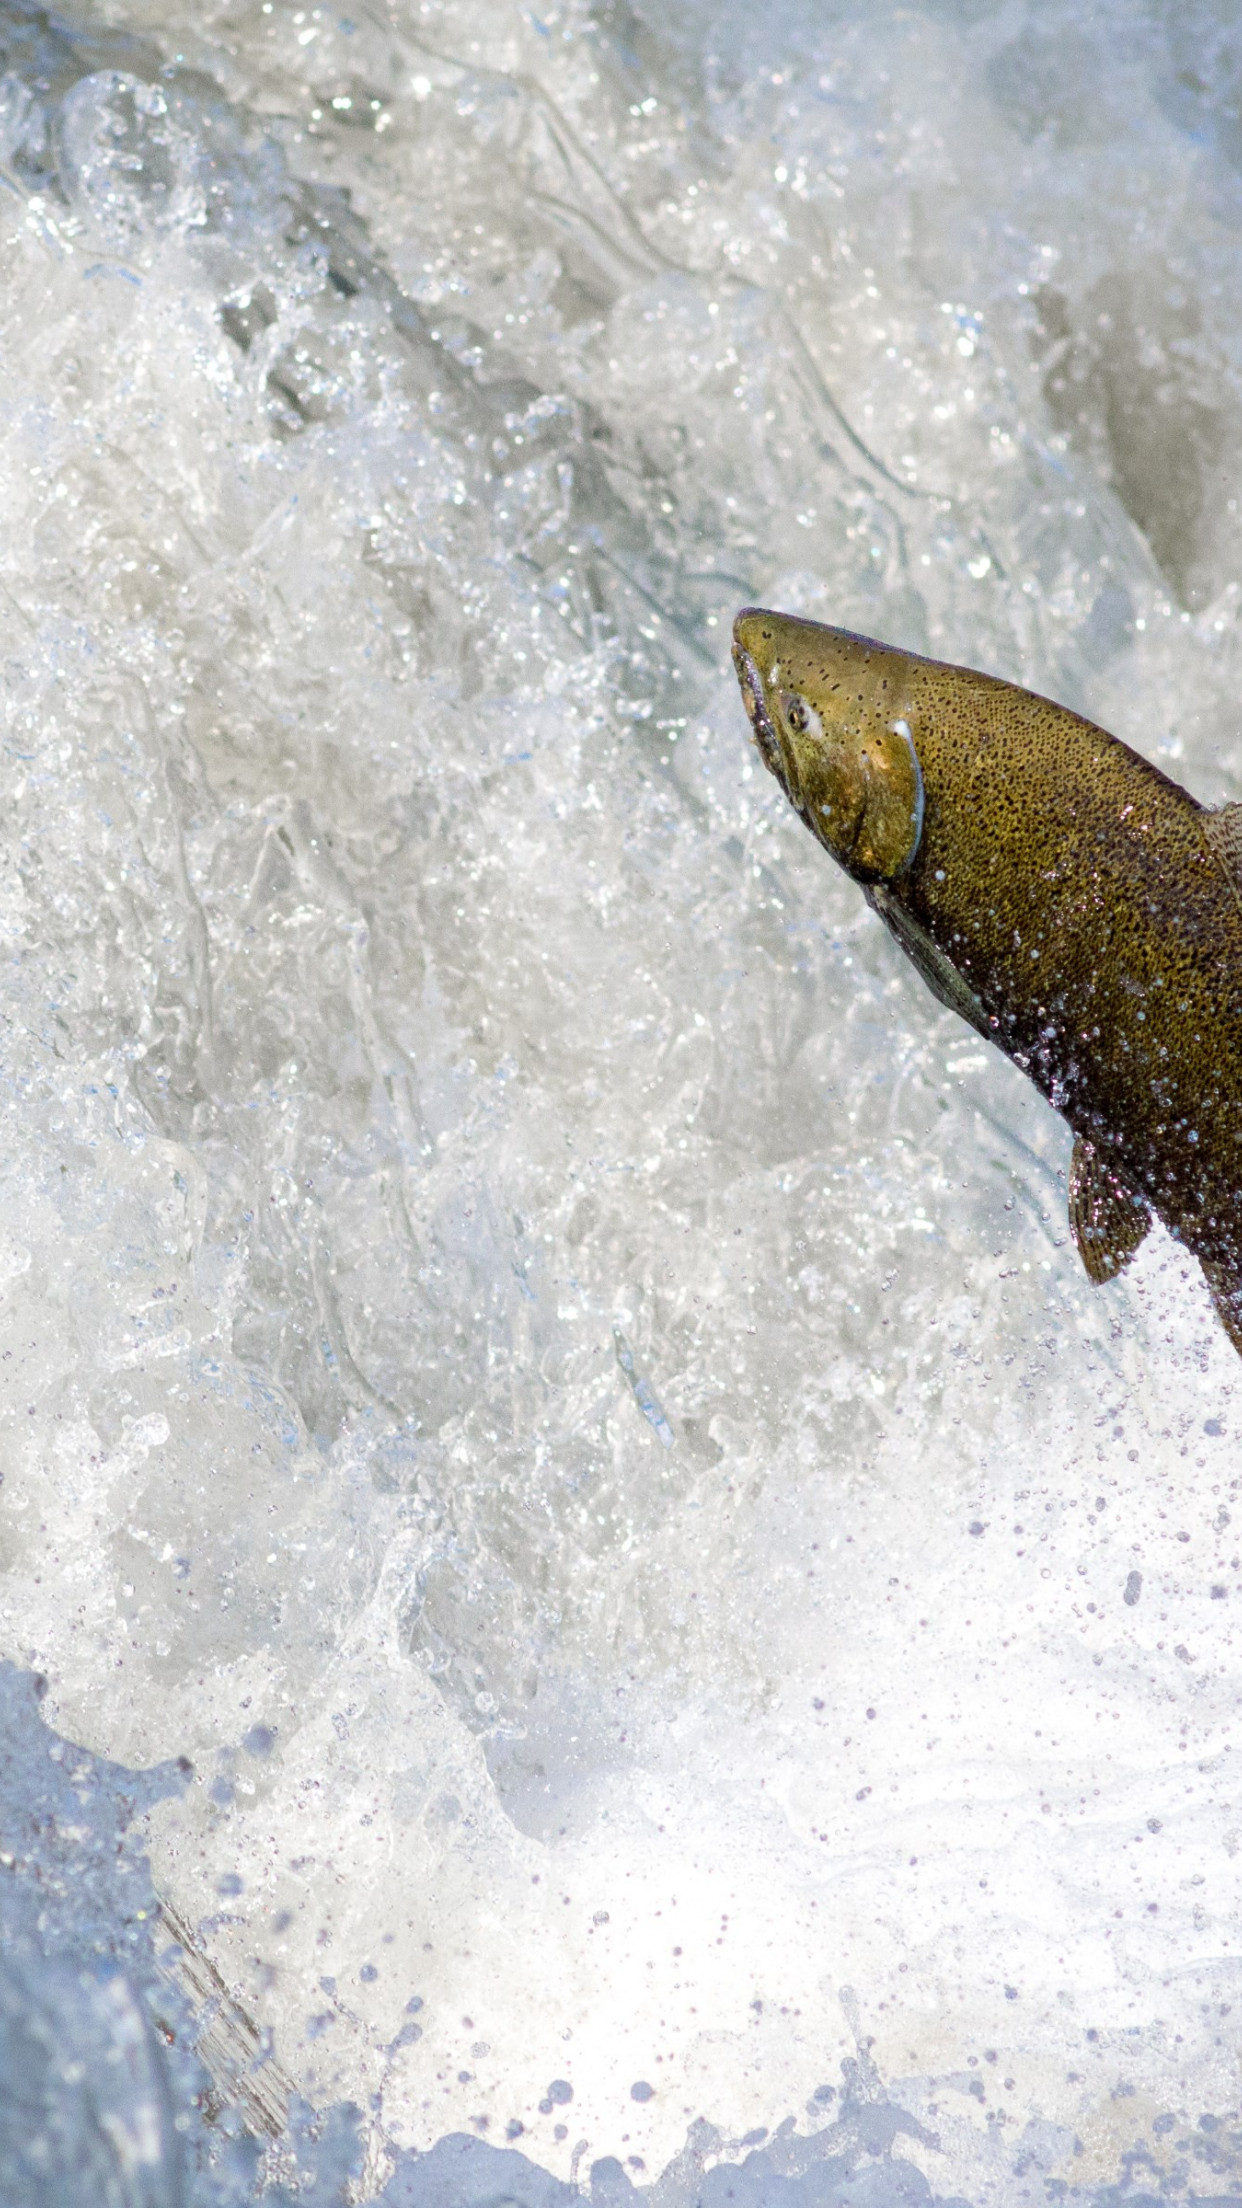 Salmon jumping over waterfall | 1242x2208 wallpaper